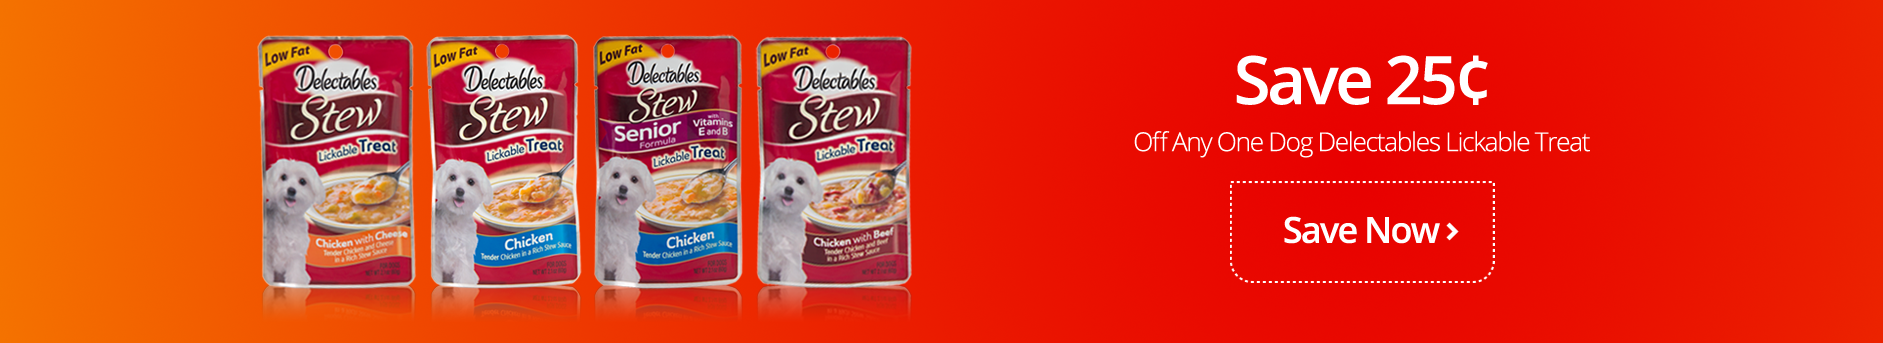 Dog Delectables Hartz